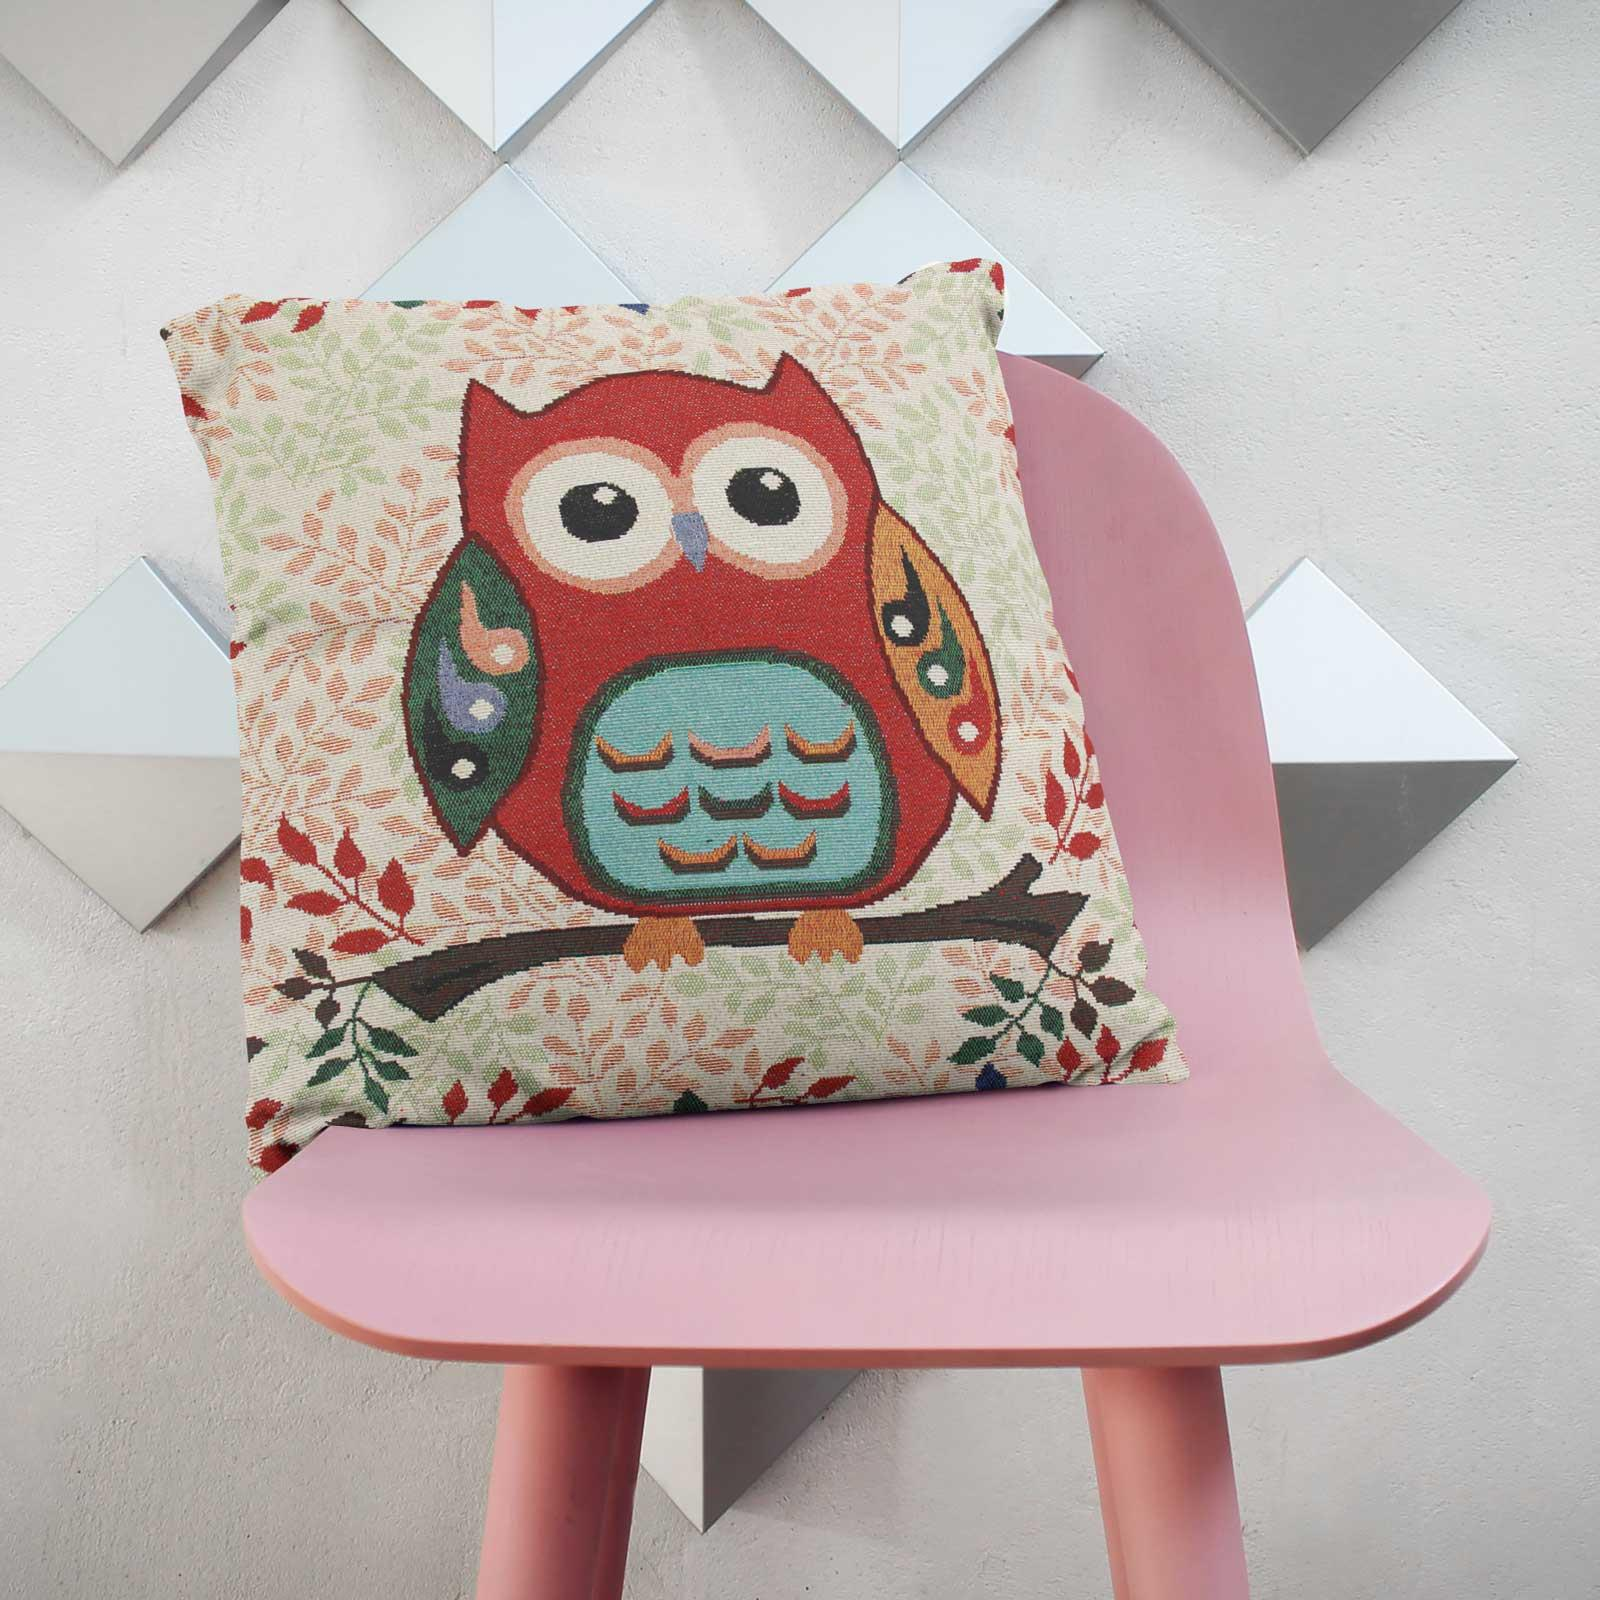 Tapestry-Cushion-Covers-Vintage-Pillow-Cover-Collection-18-034-45cm-Filled-Cushions thumbnail 213